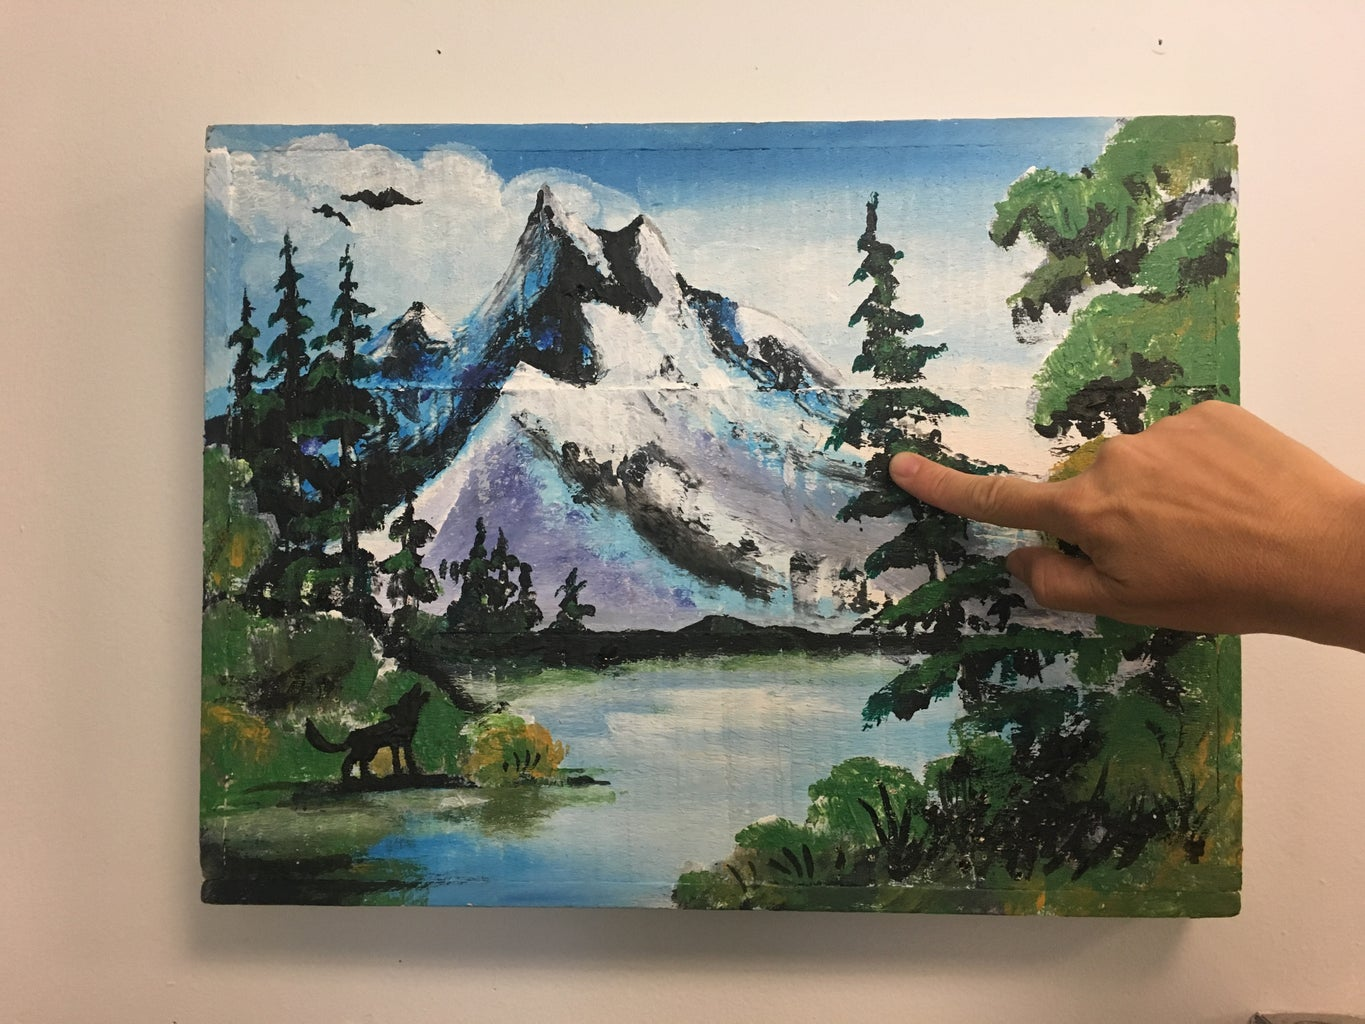 Interactive Painting - Inspired by Bob Ross